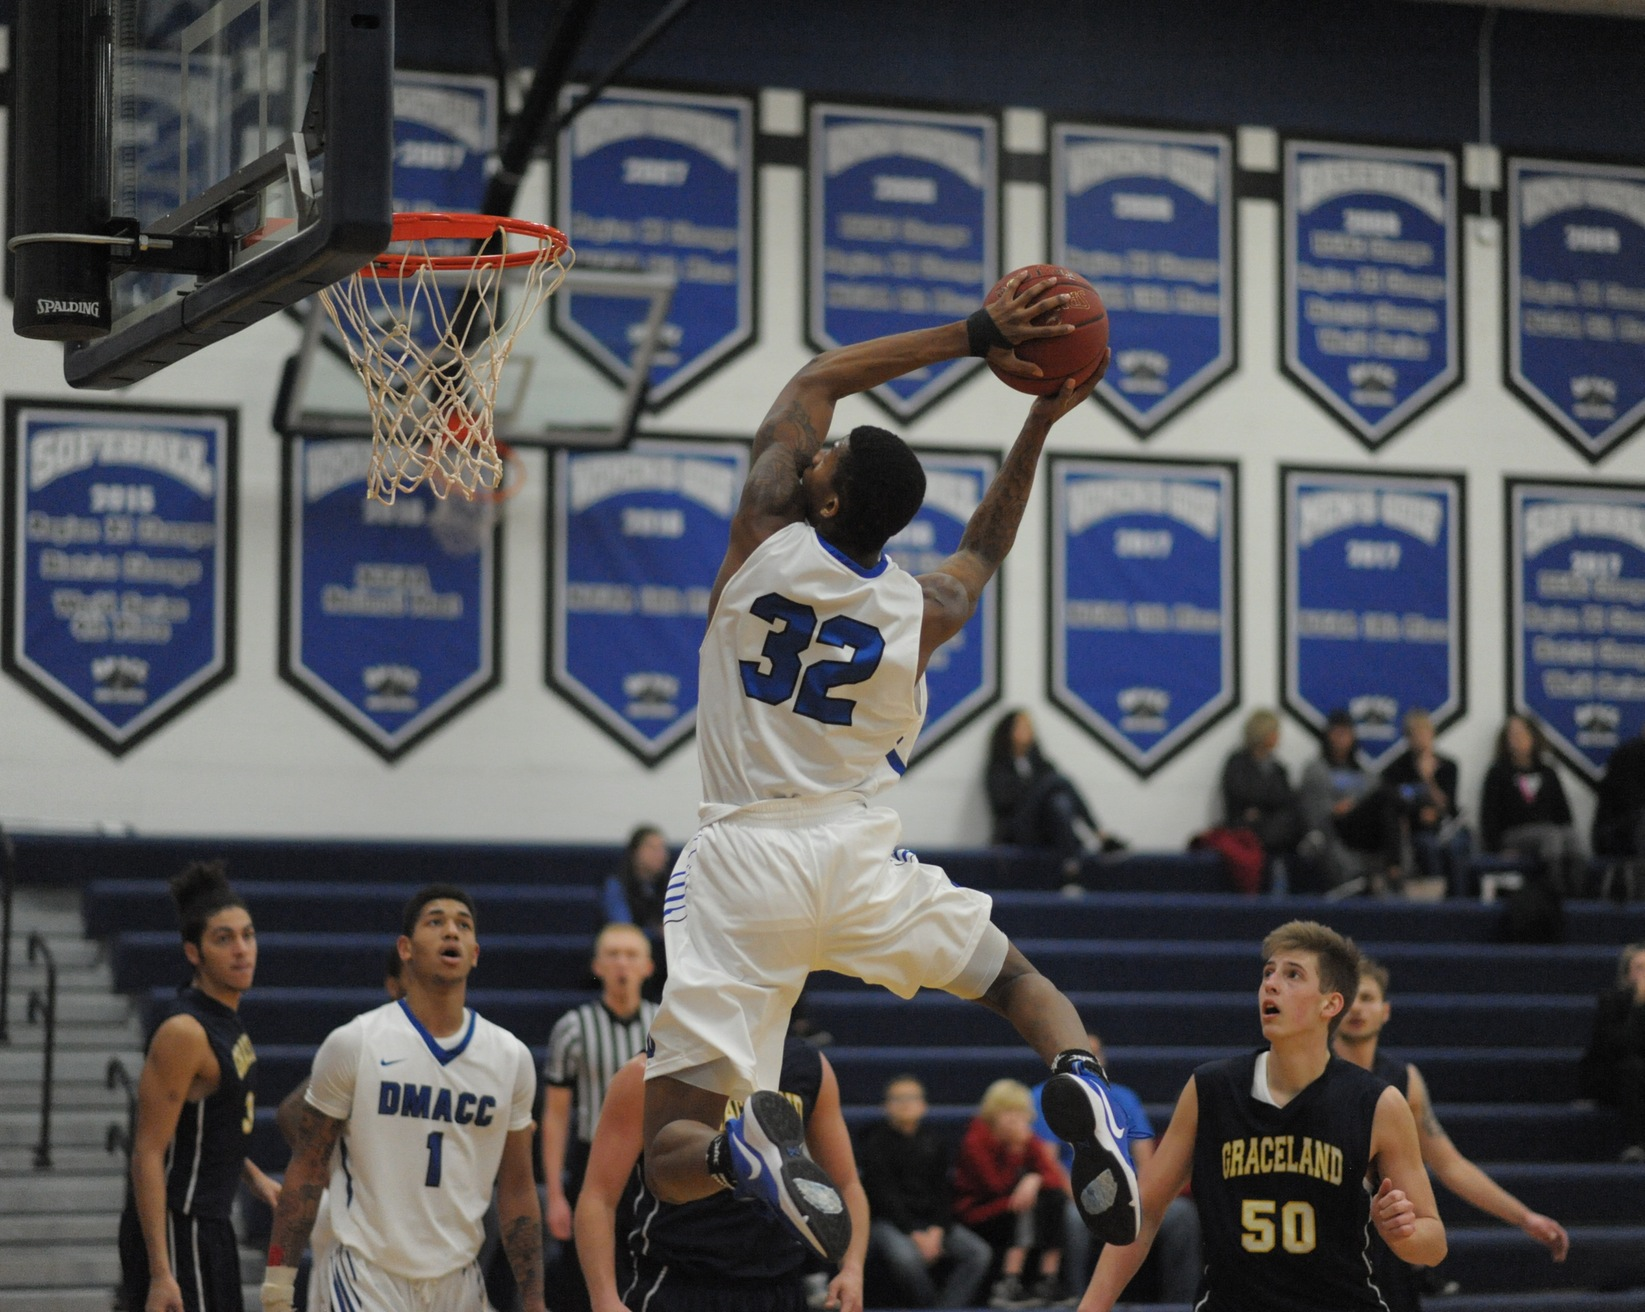 DMACC men's basketball team begins 2018-19 season with two wins